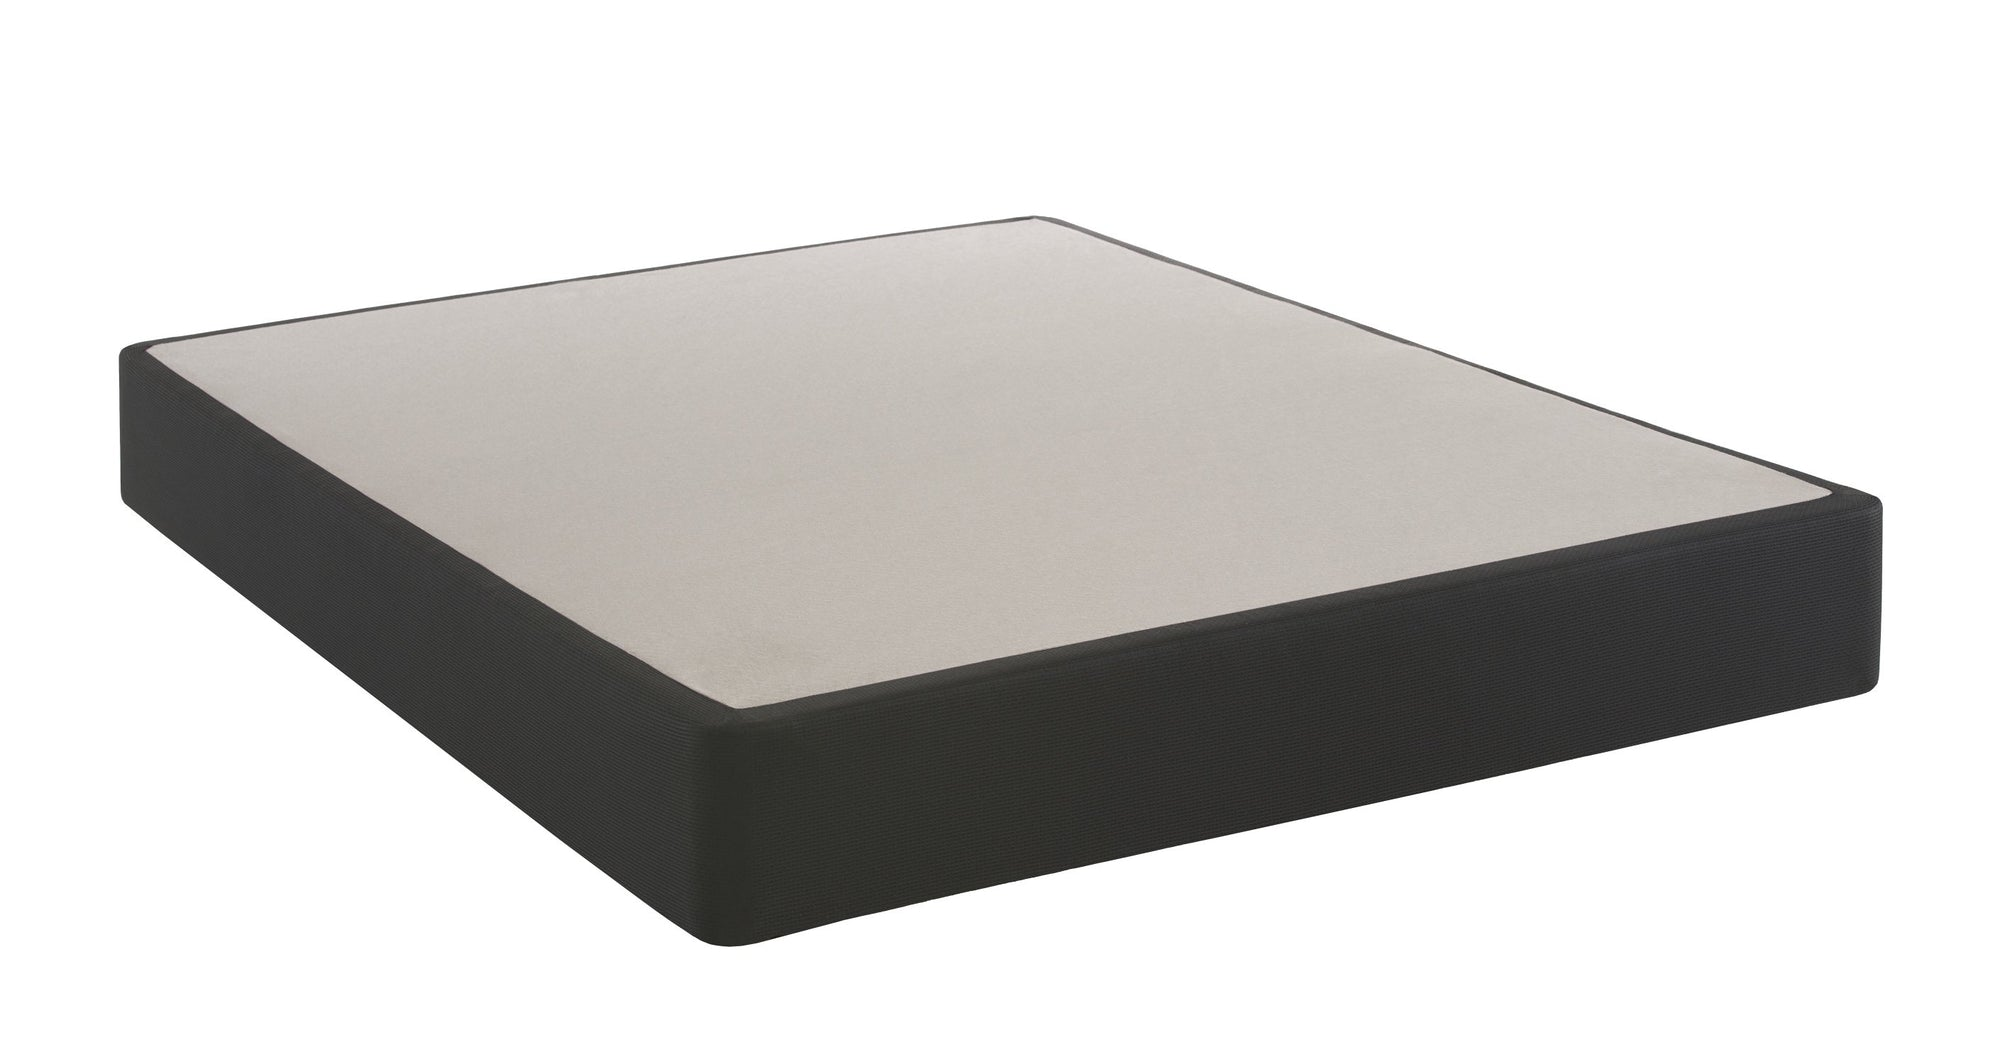 Sealy Posturetech Flat Foundation Bed Base Sealy